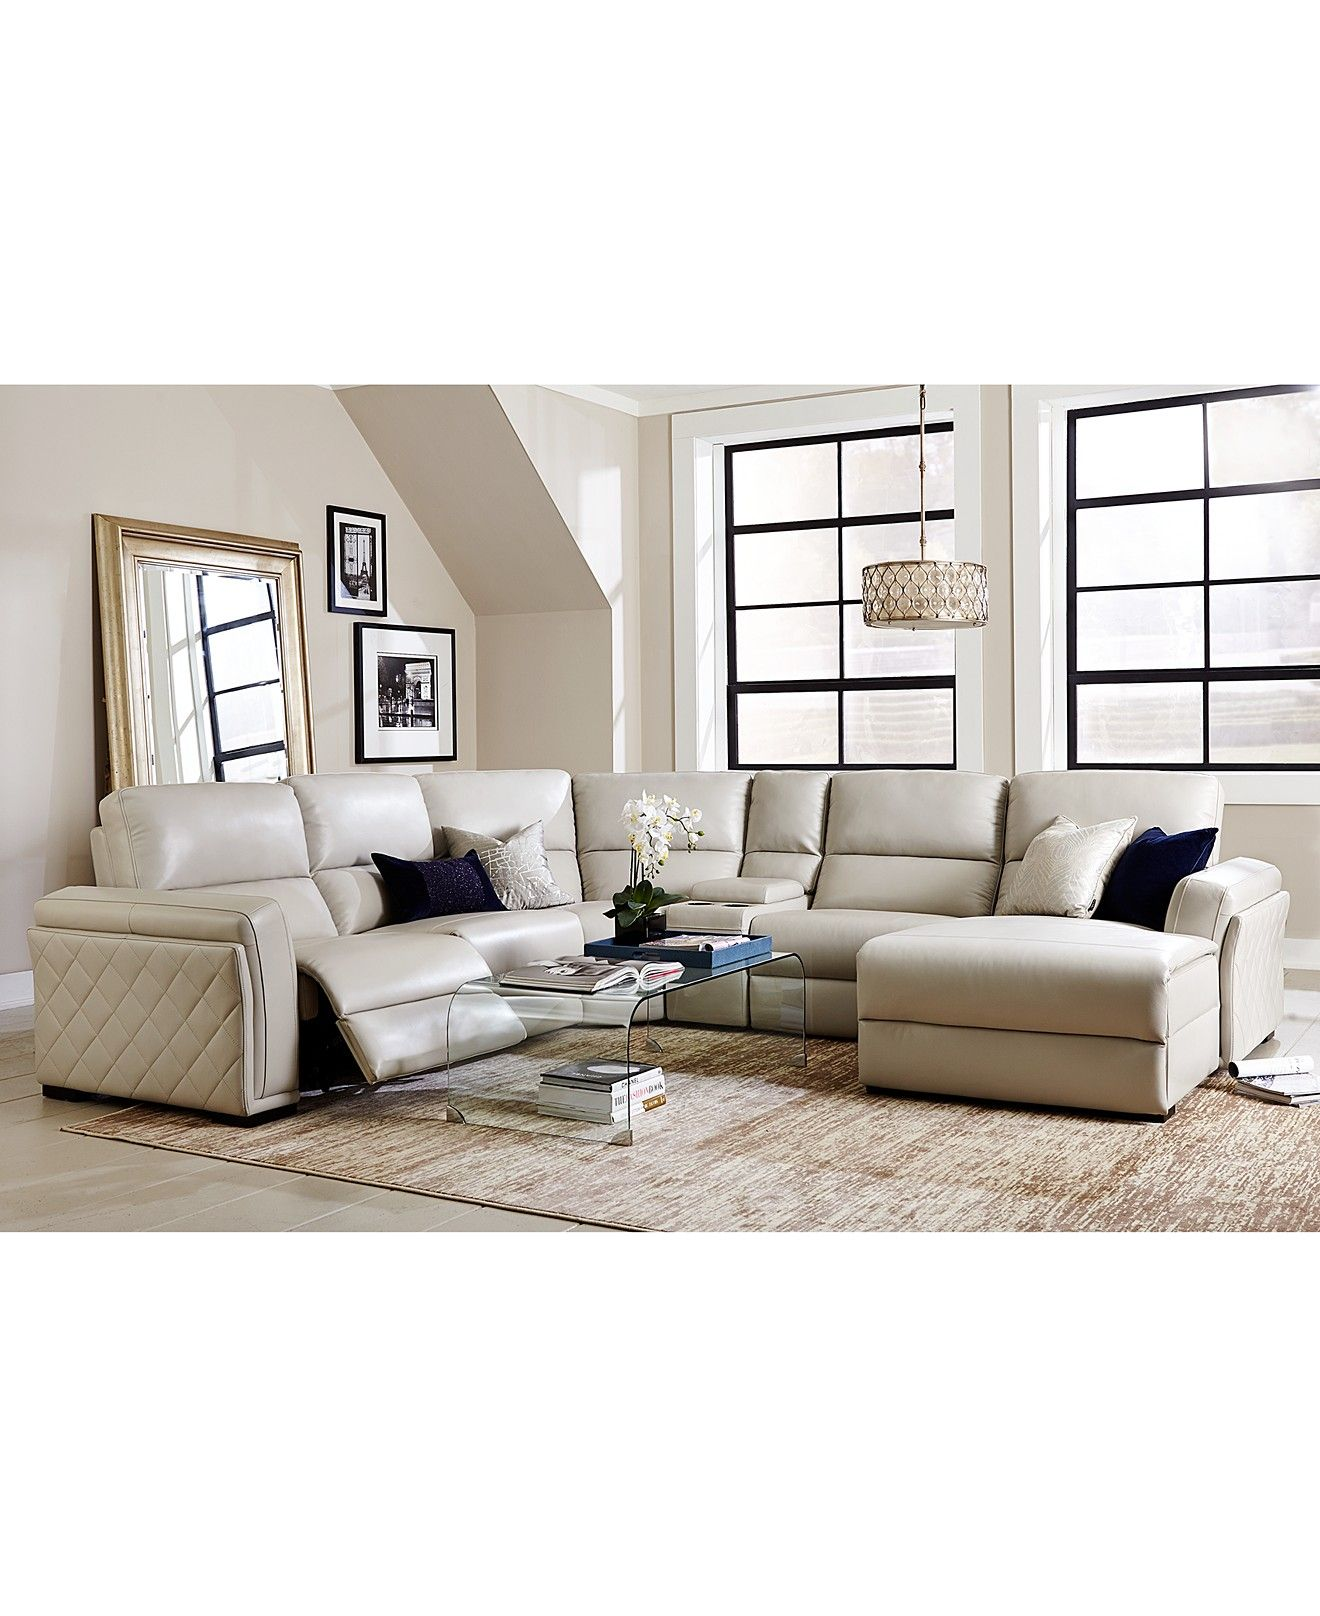 Best Jessi 6 Pc Leather Sectional Sofa With Chaise Center 400 x 300